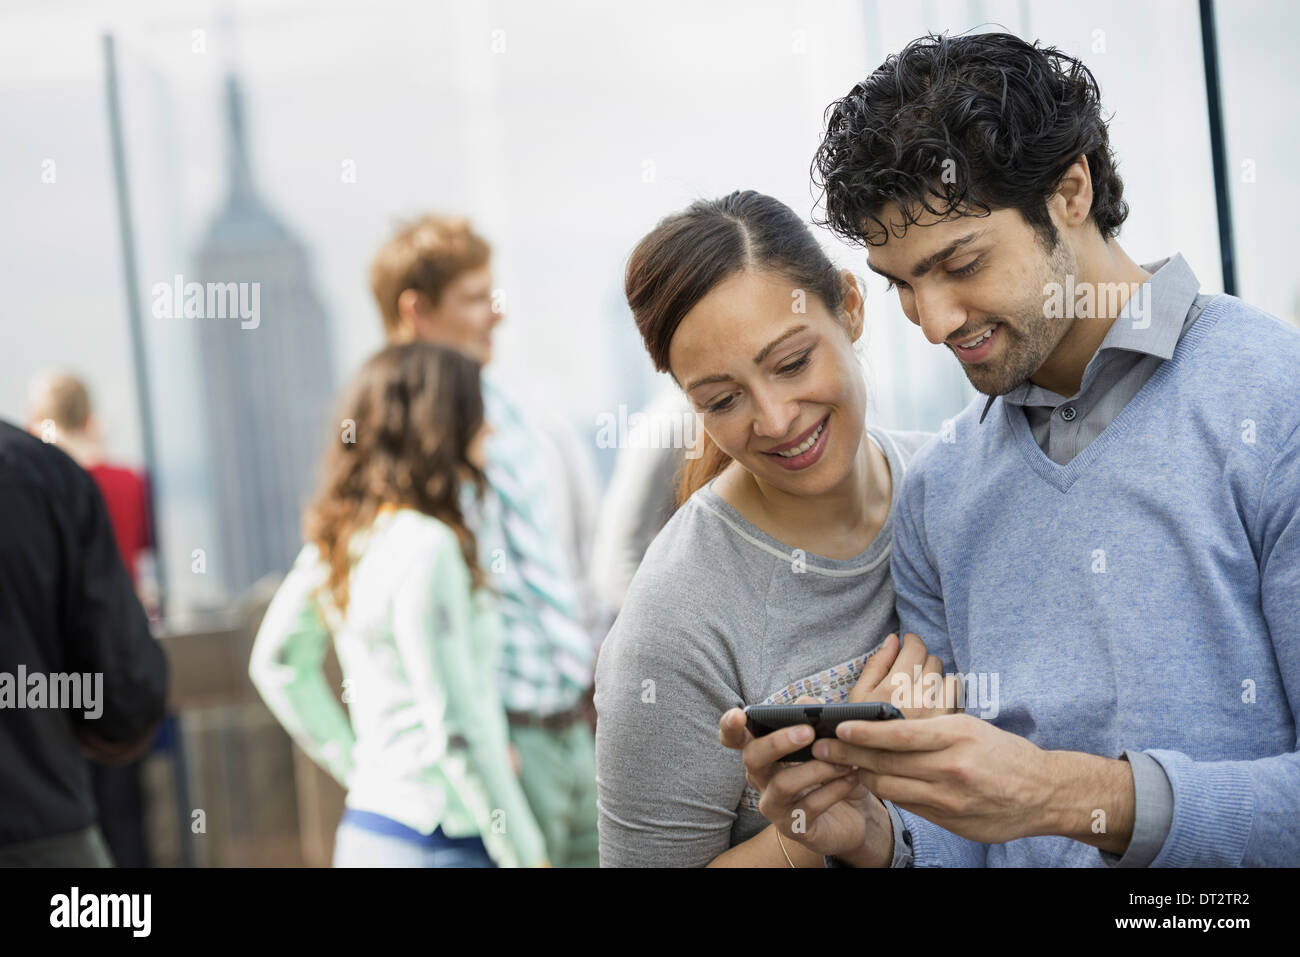 A young couple taking photographs with a mobile phone - Stock Image